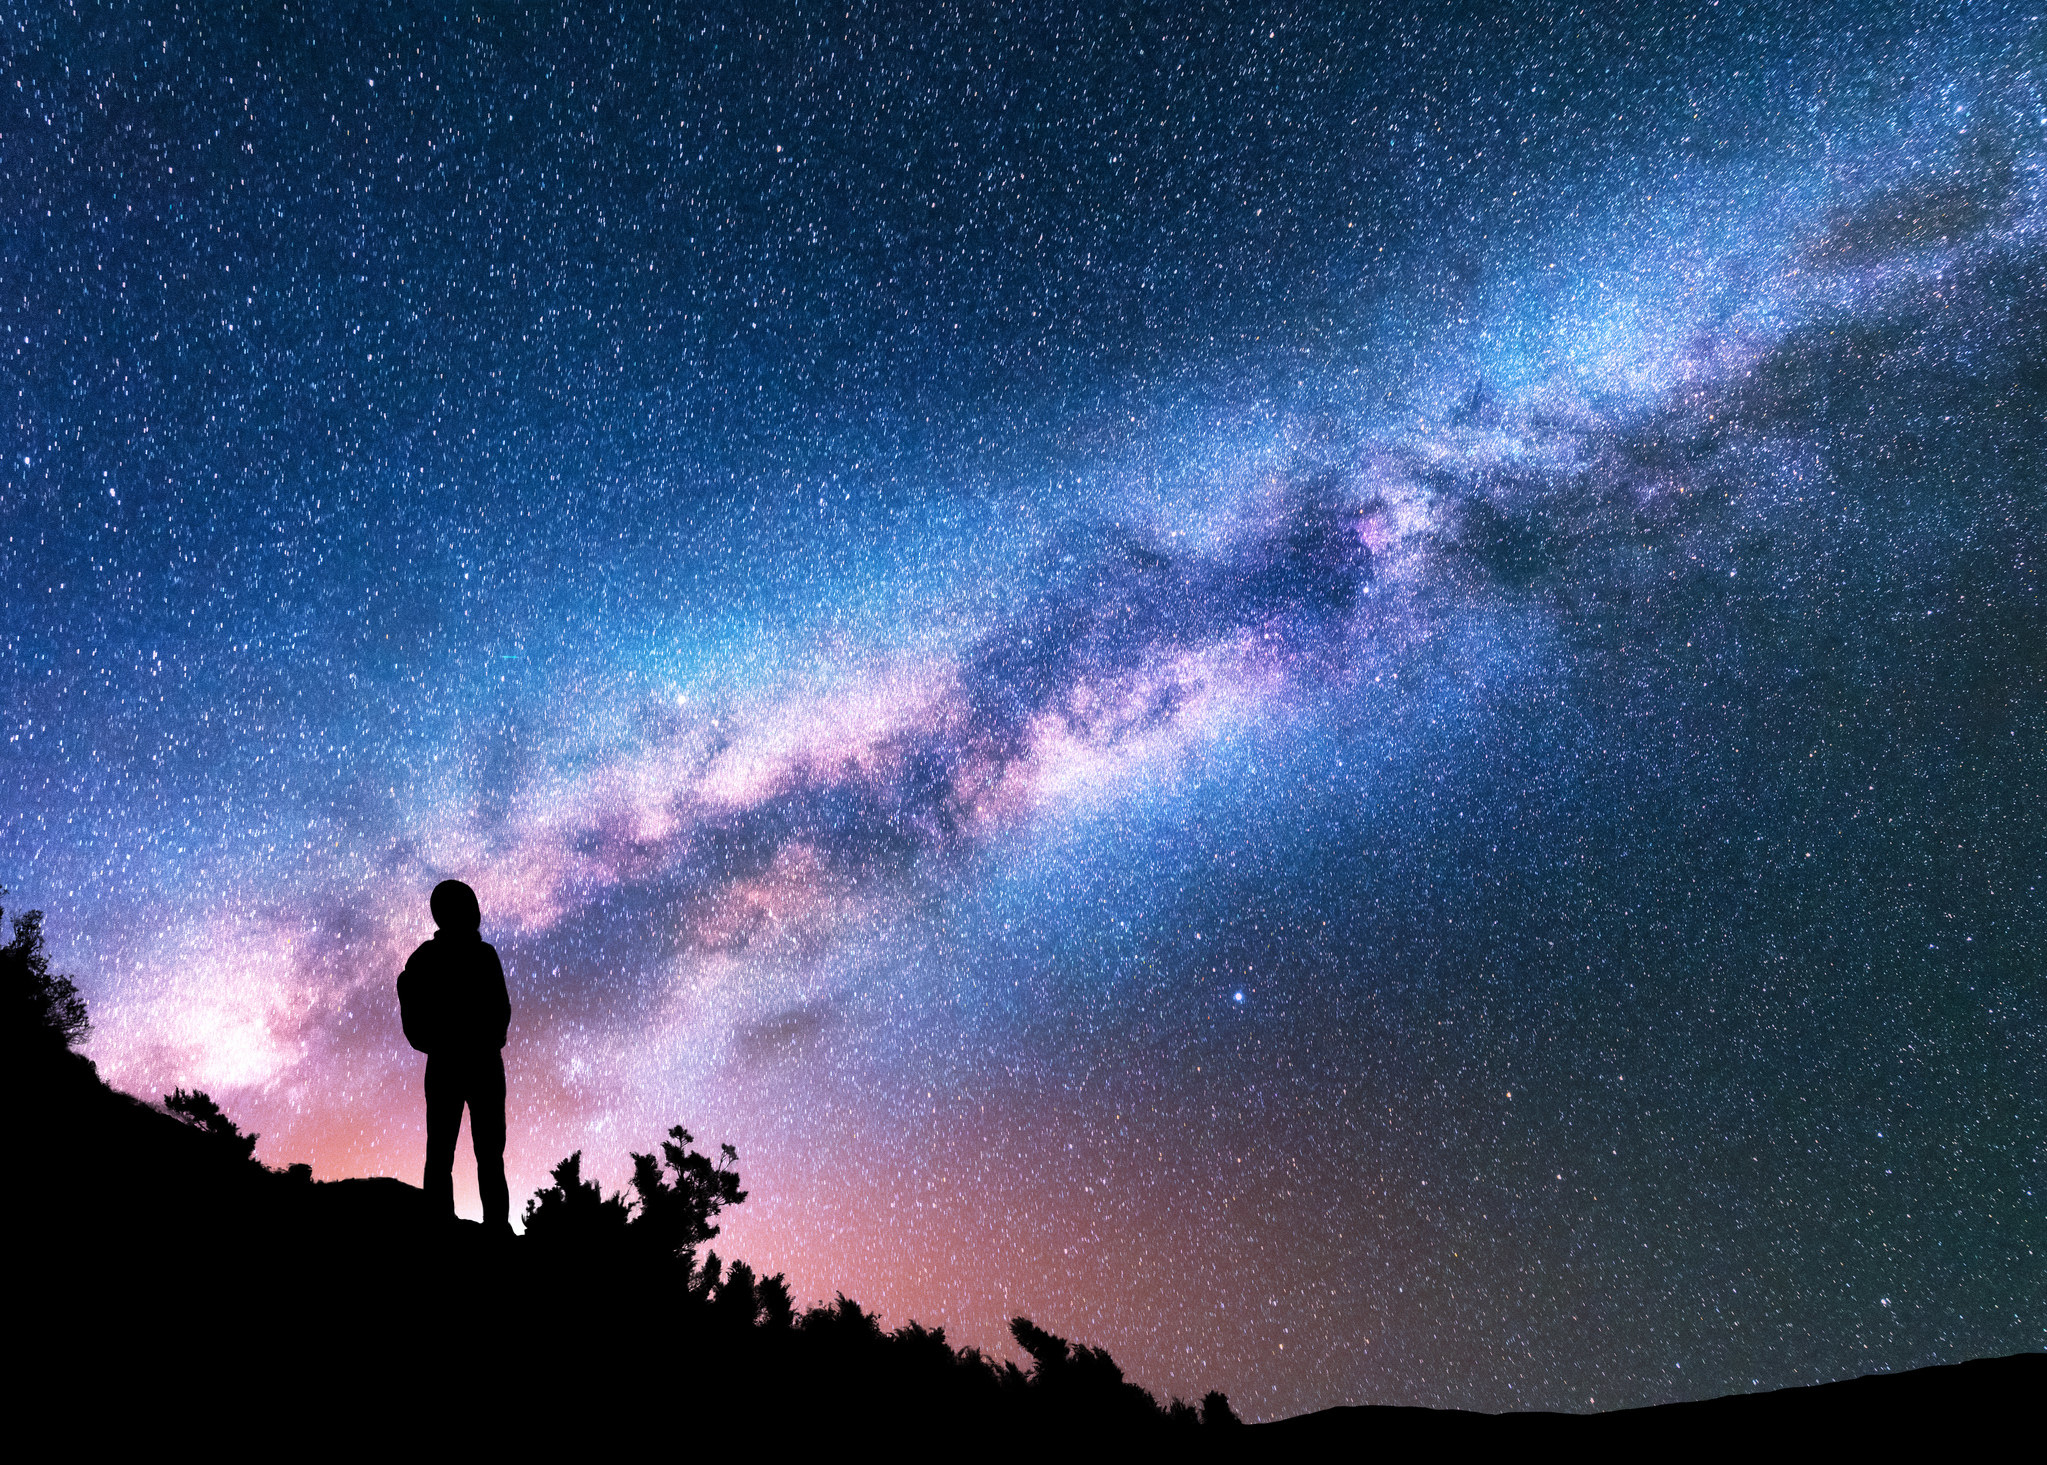 photo of a silhouette of a man with a backpack staring at the milky way stargaze at night